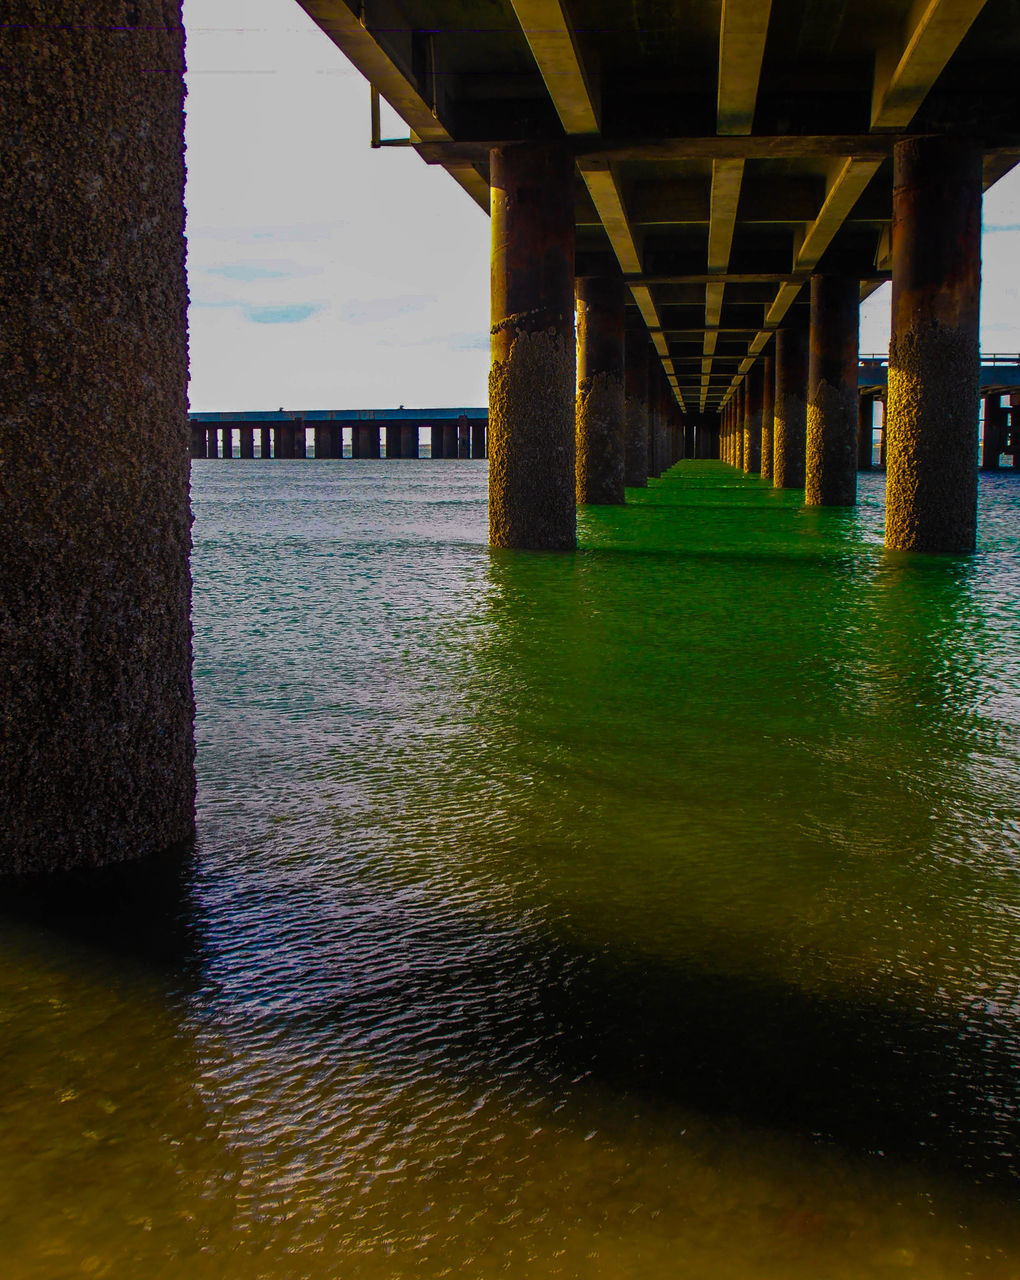 architecture, bridge - man made structure, underneath, built structure, connection, water, below, pier, river, architectural column, covered bridge, bridge, no people, waterfront, outdoors, under, nature, day, sky